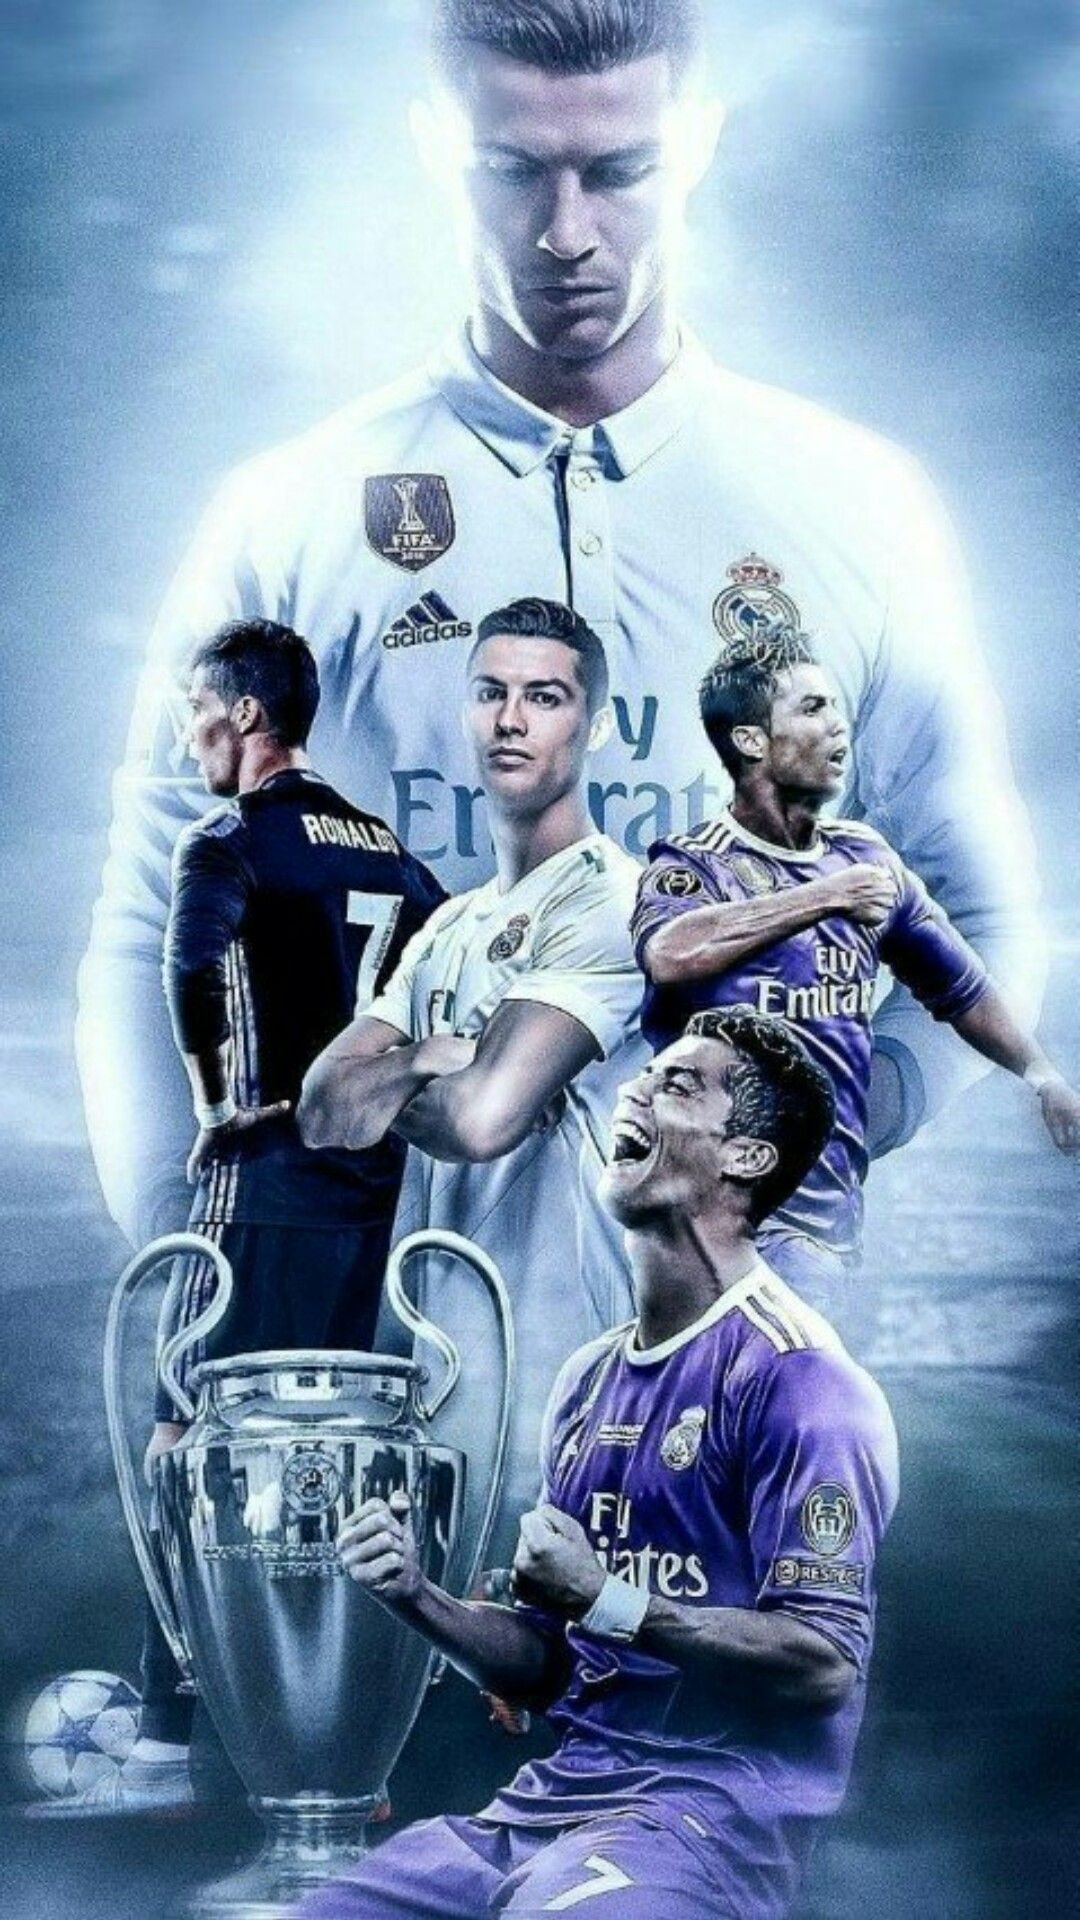 Real Madrid Team Background Image In 2020 Cristiano Ronaldo Wallpapers Real Madrid Cristiano Ronaldo Real Madrid Team